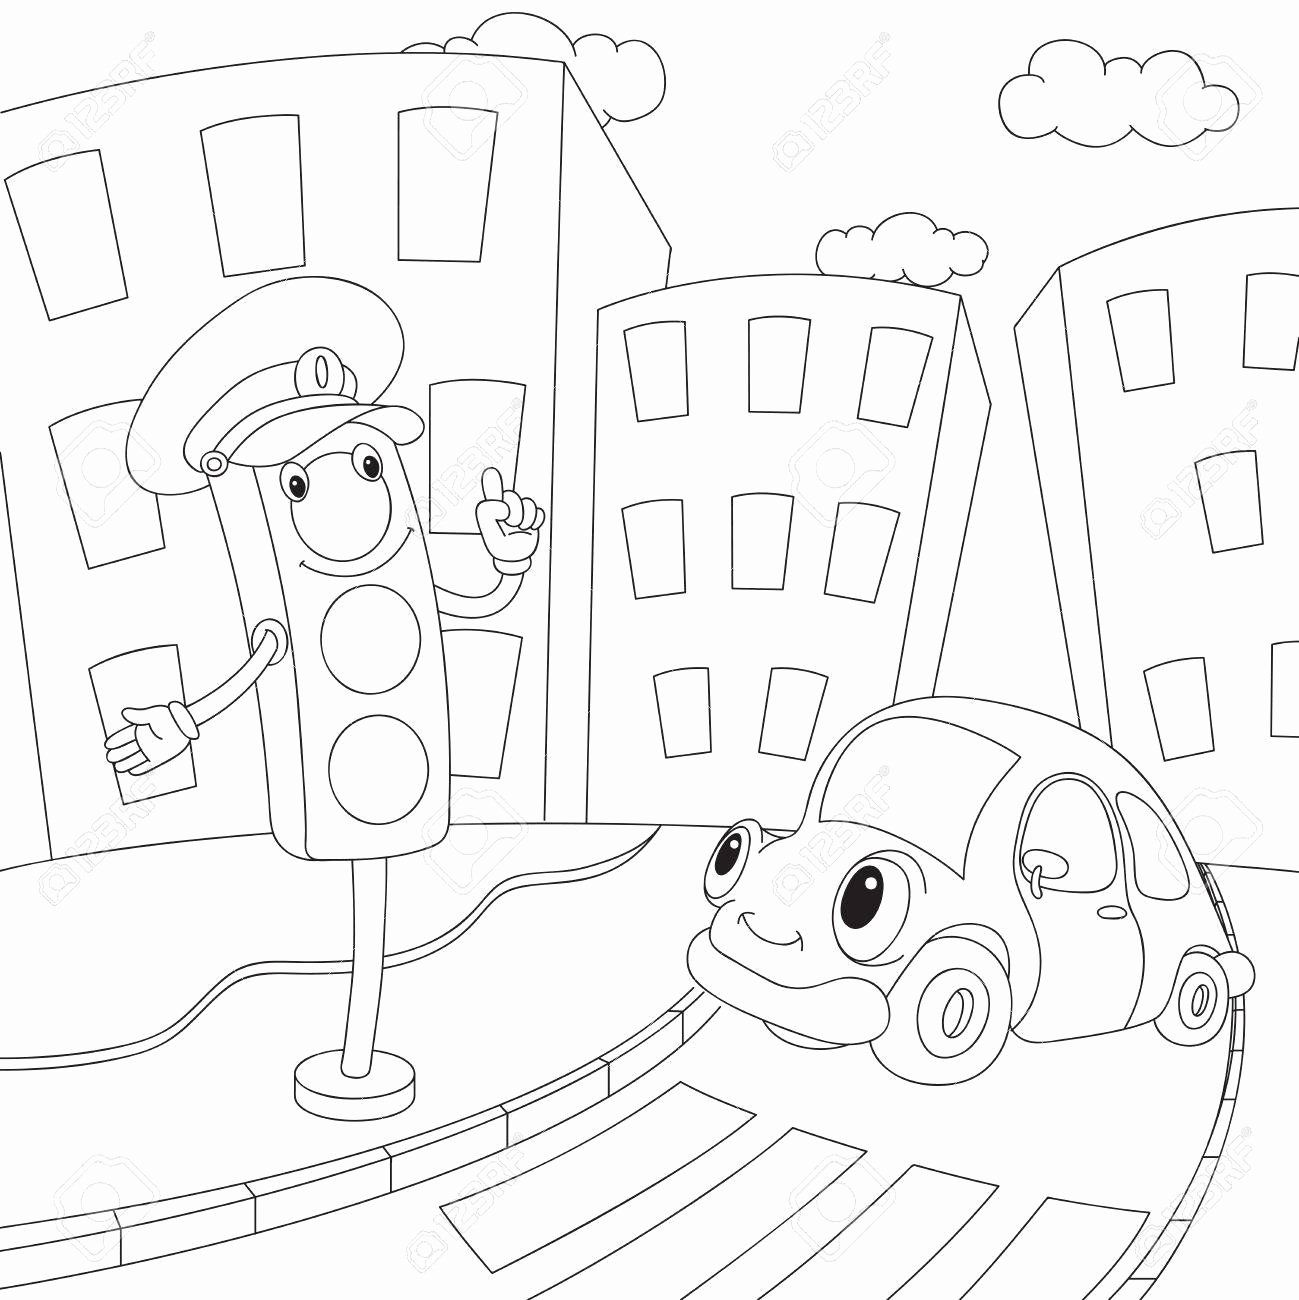 24 Stop Light Coloring Page In